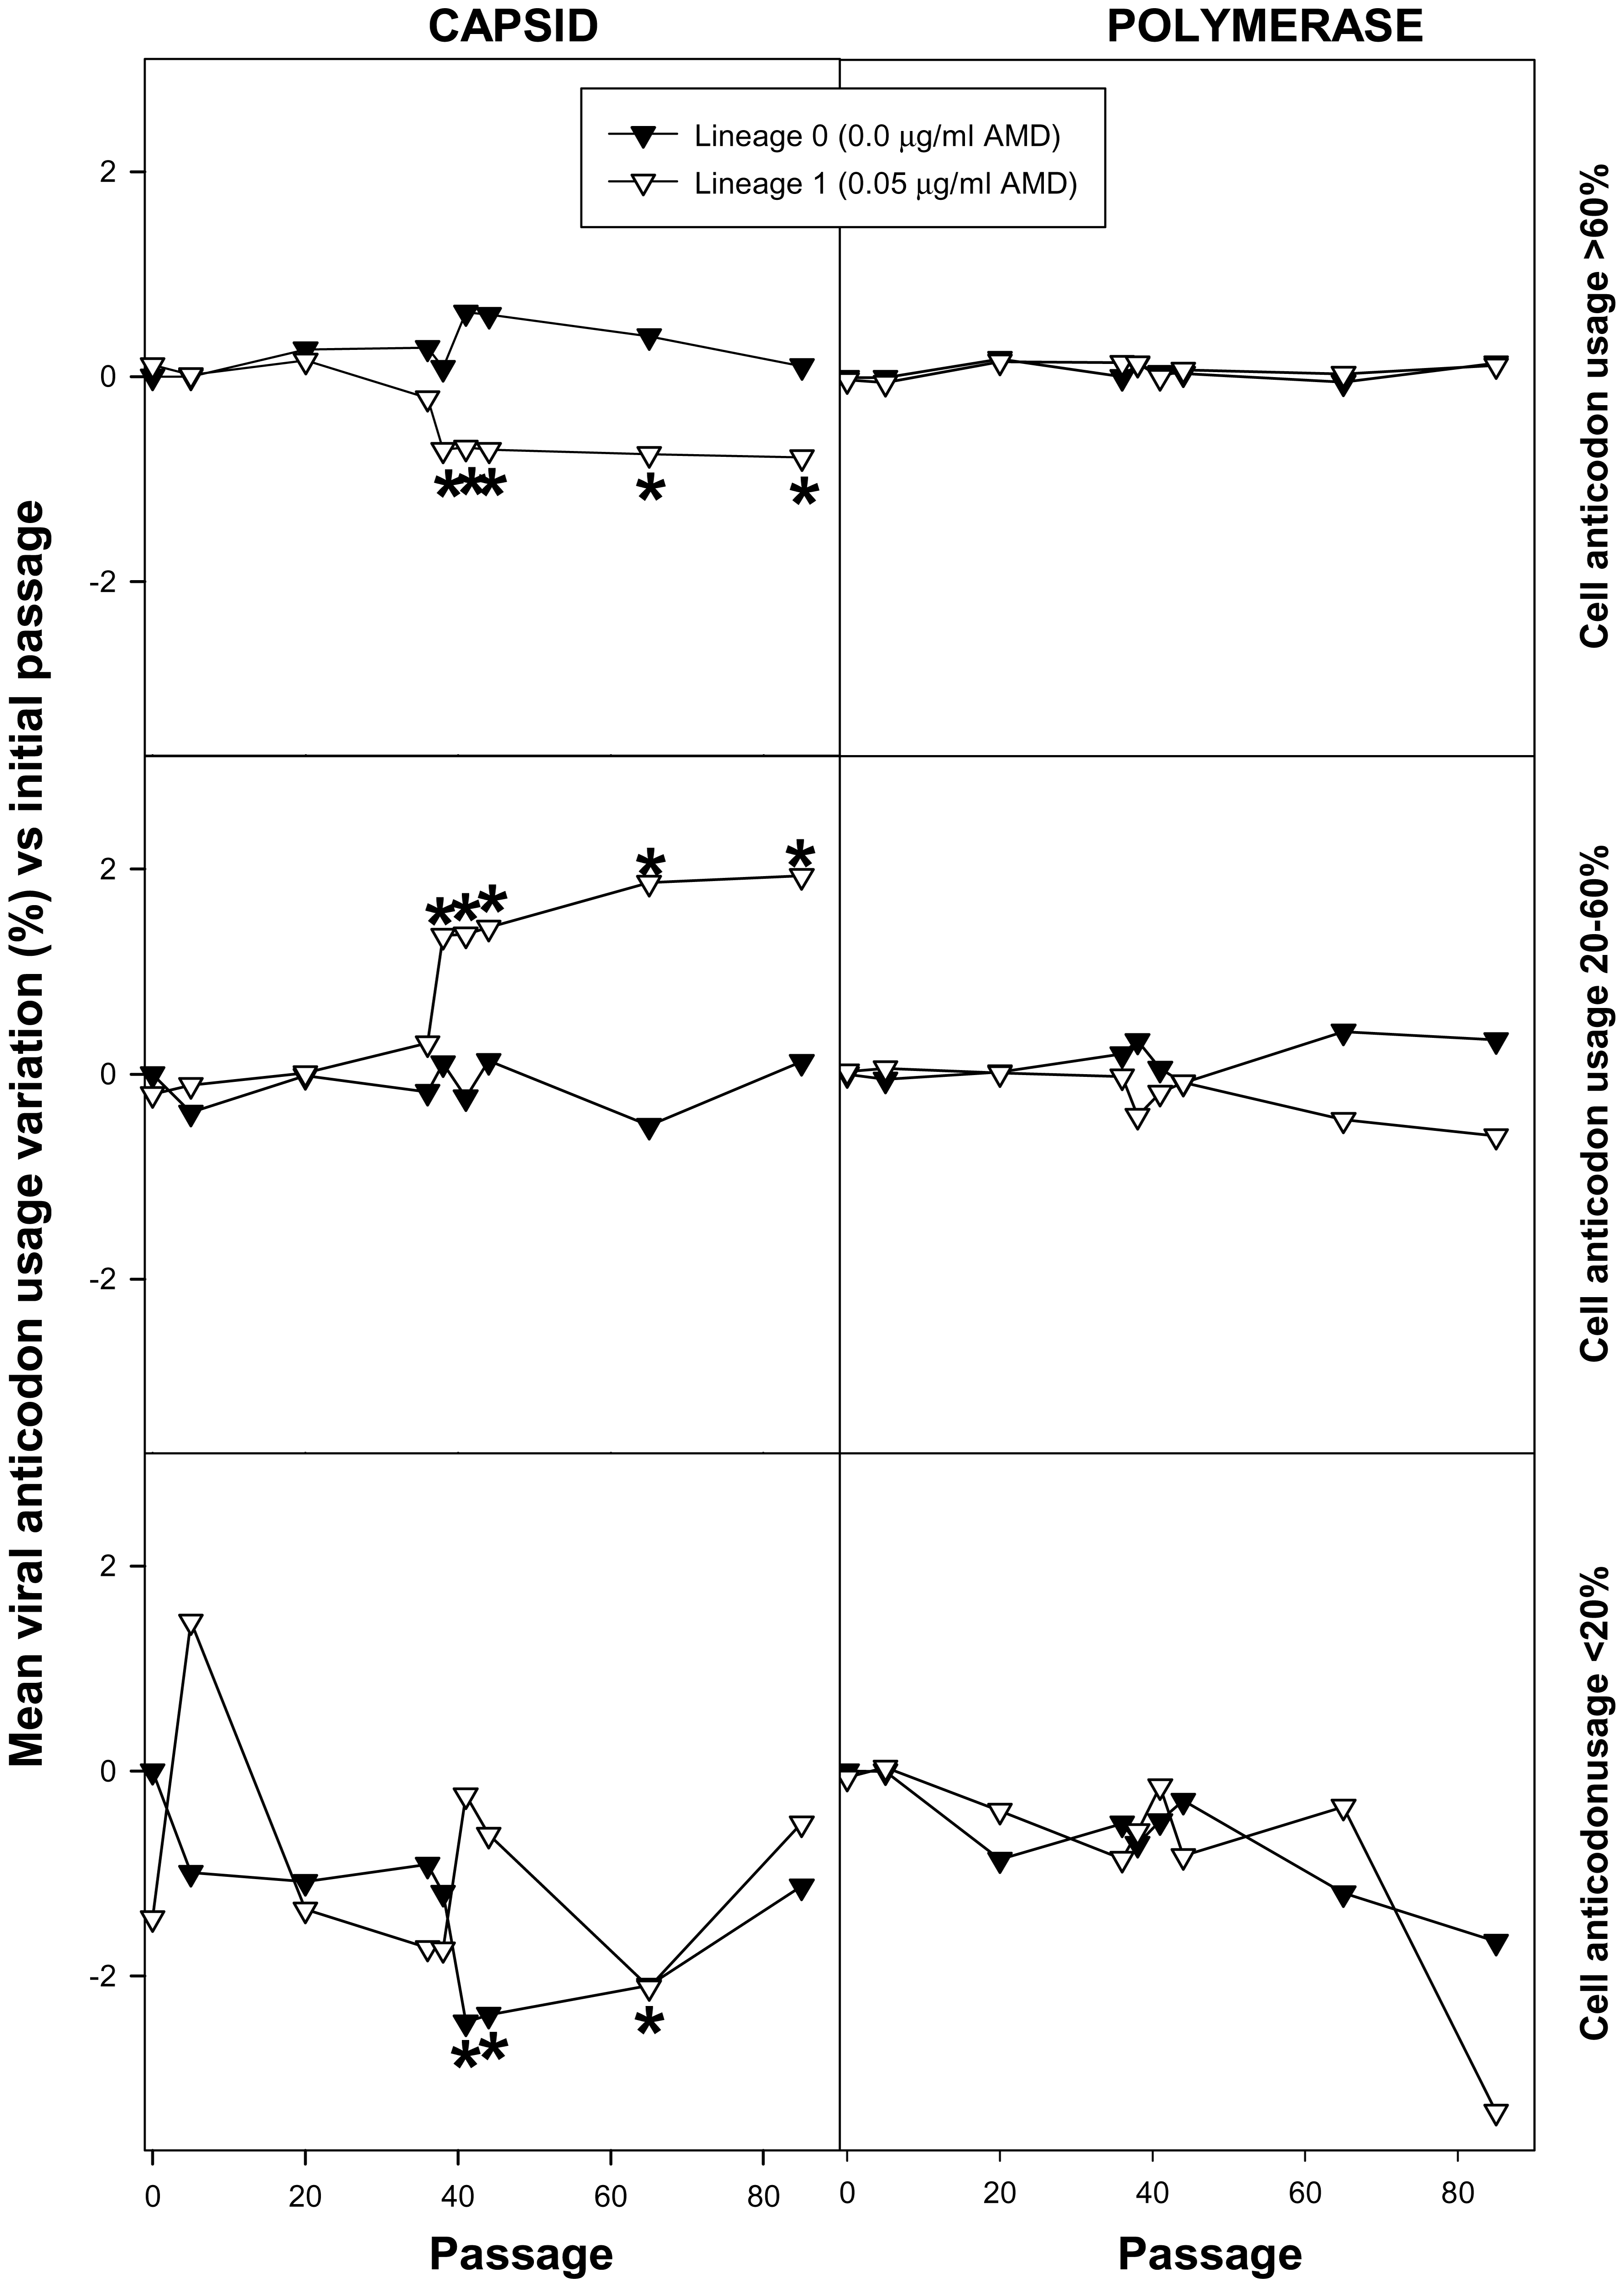 HAV anticodon usage variation in the capsid and polymerase regions during the adaptation to 0.05 µg/ml of AMD.